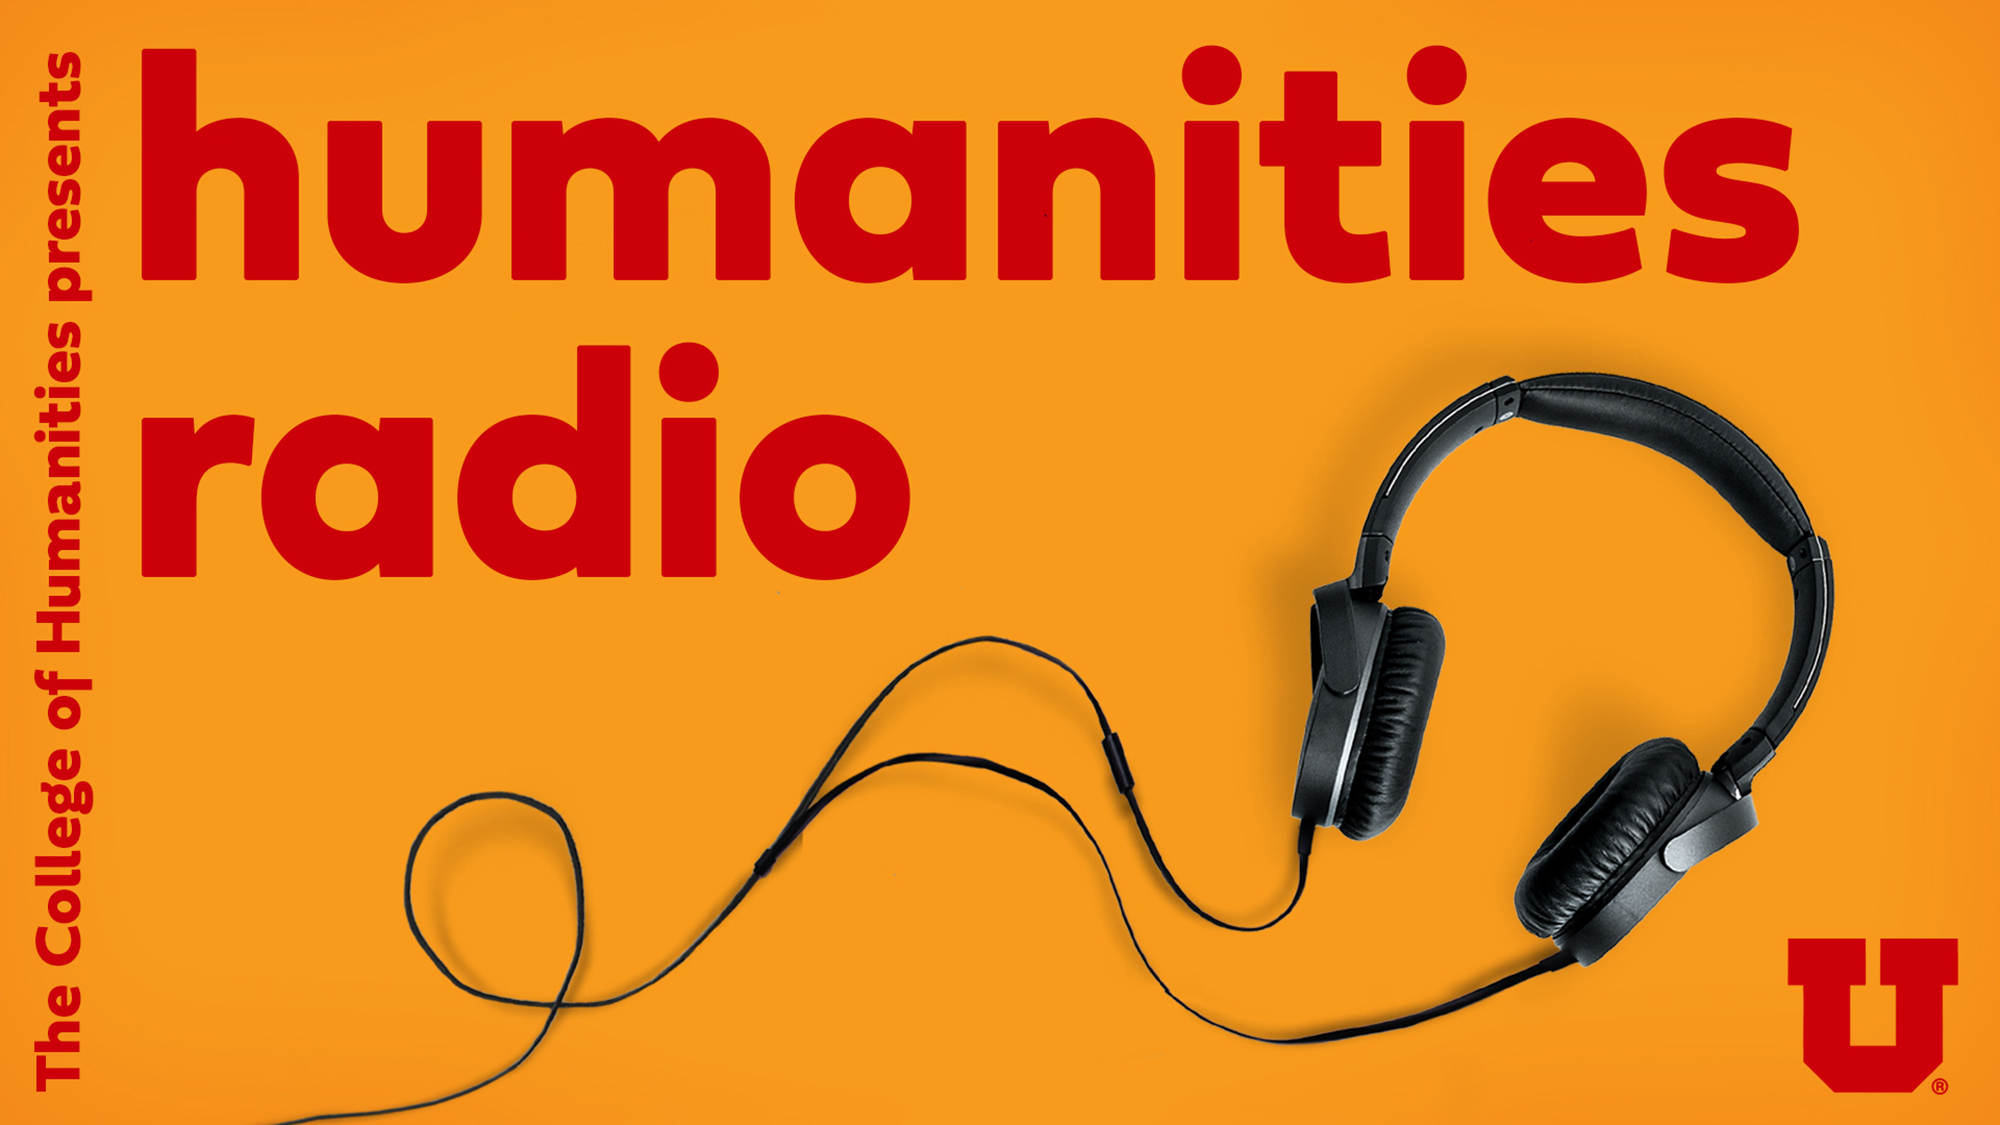 Graphic reads, College of Humanities presents, Humanities Radio. image shows headphones under text.